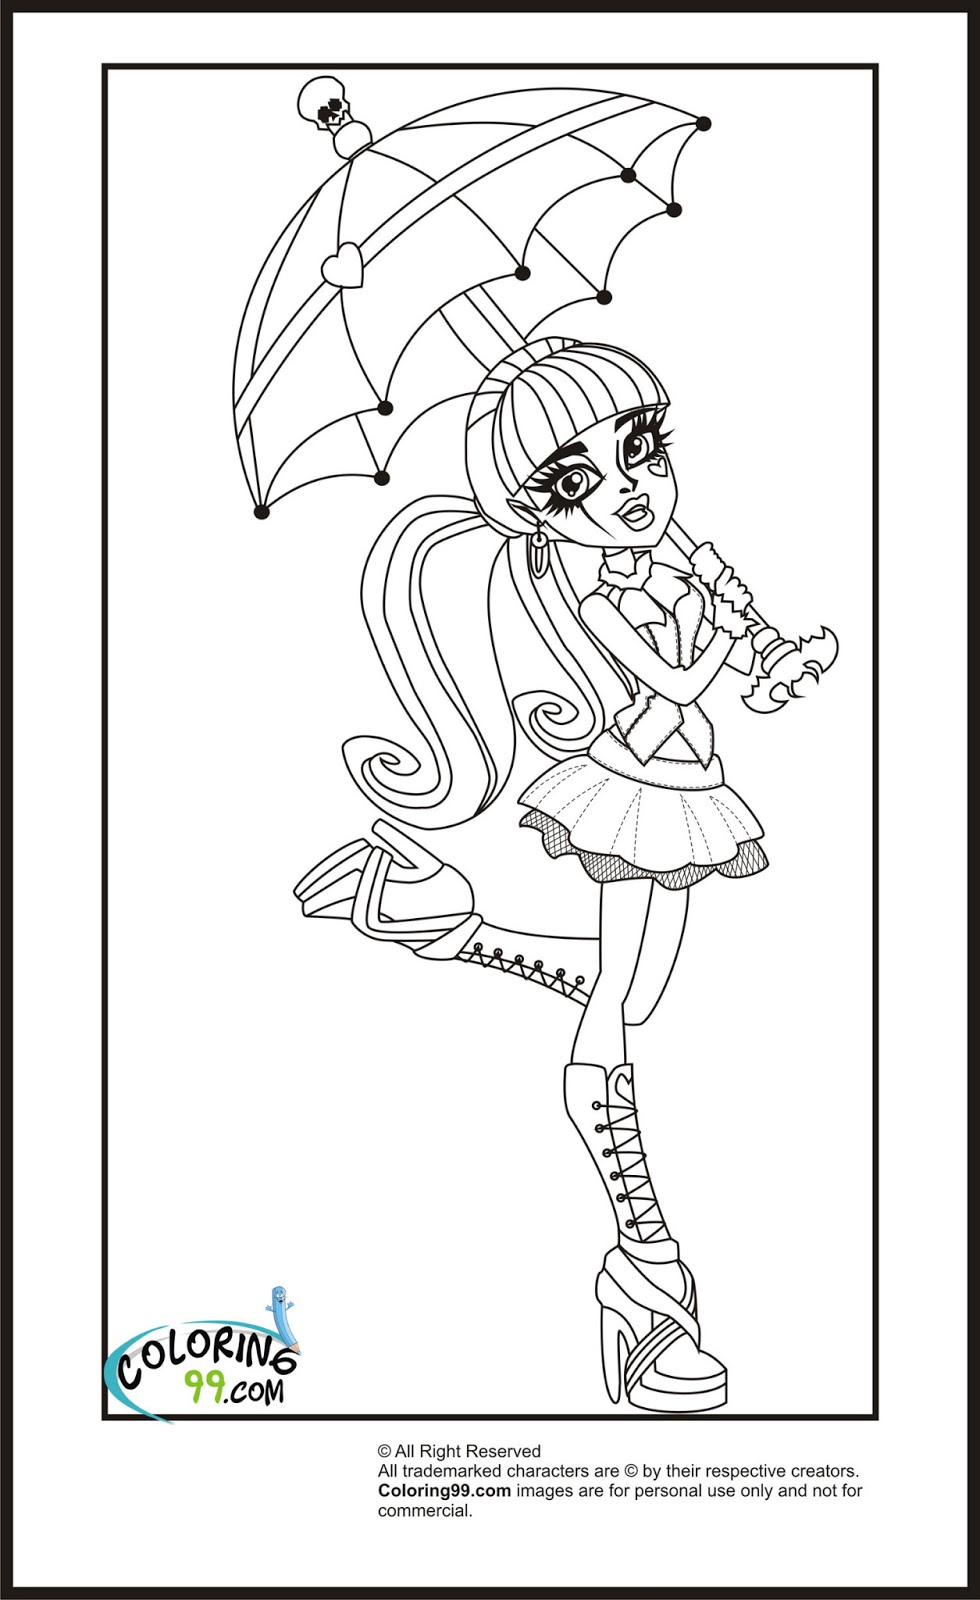 Monster high draculaura coloring pages minister coloring for Monster high printables coloring pages